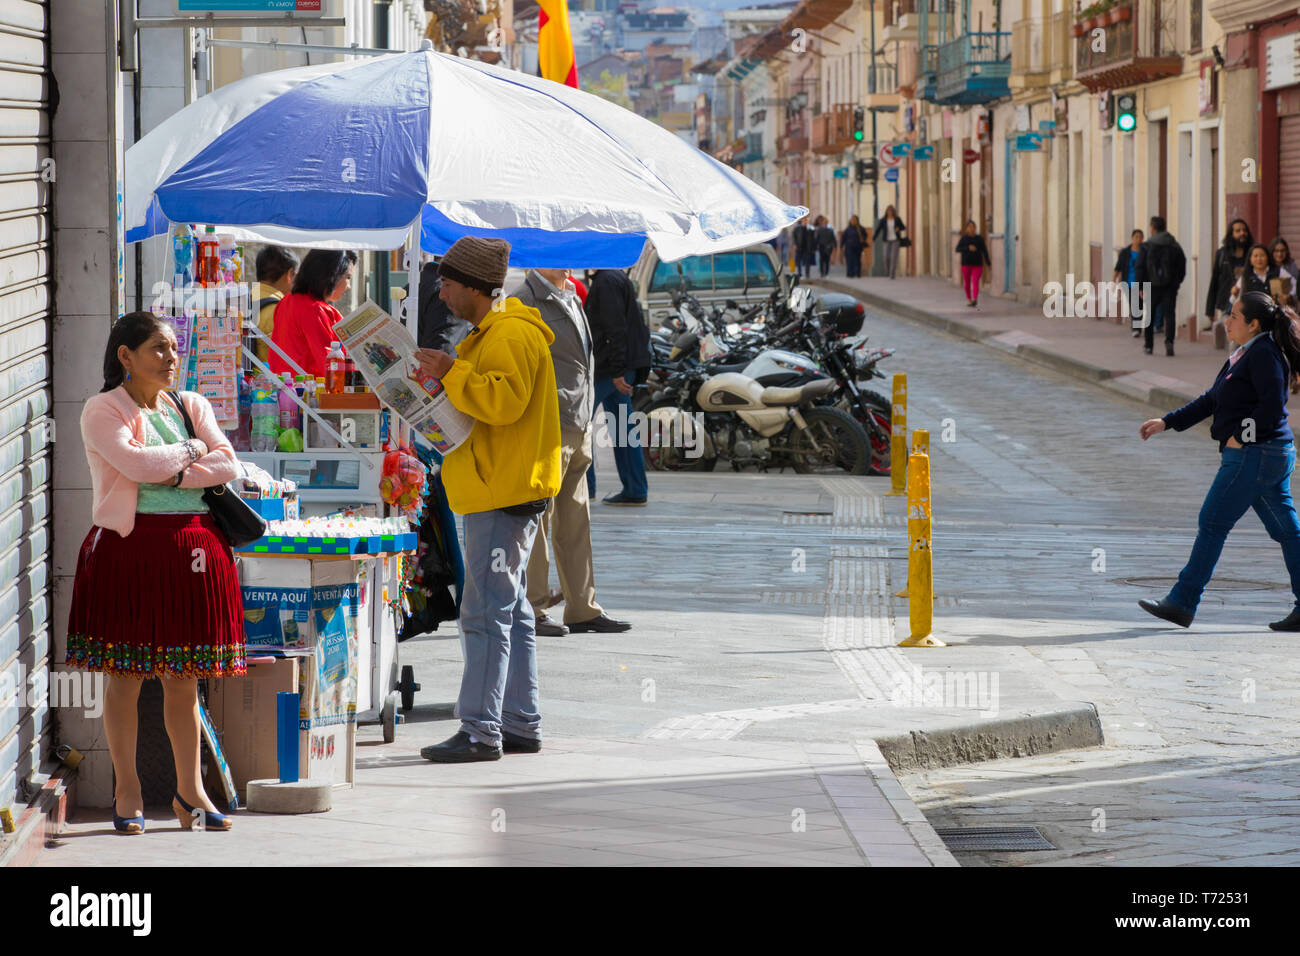 lottery ticket and sodas stall Cuenca Ecuador - Stock Image